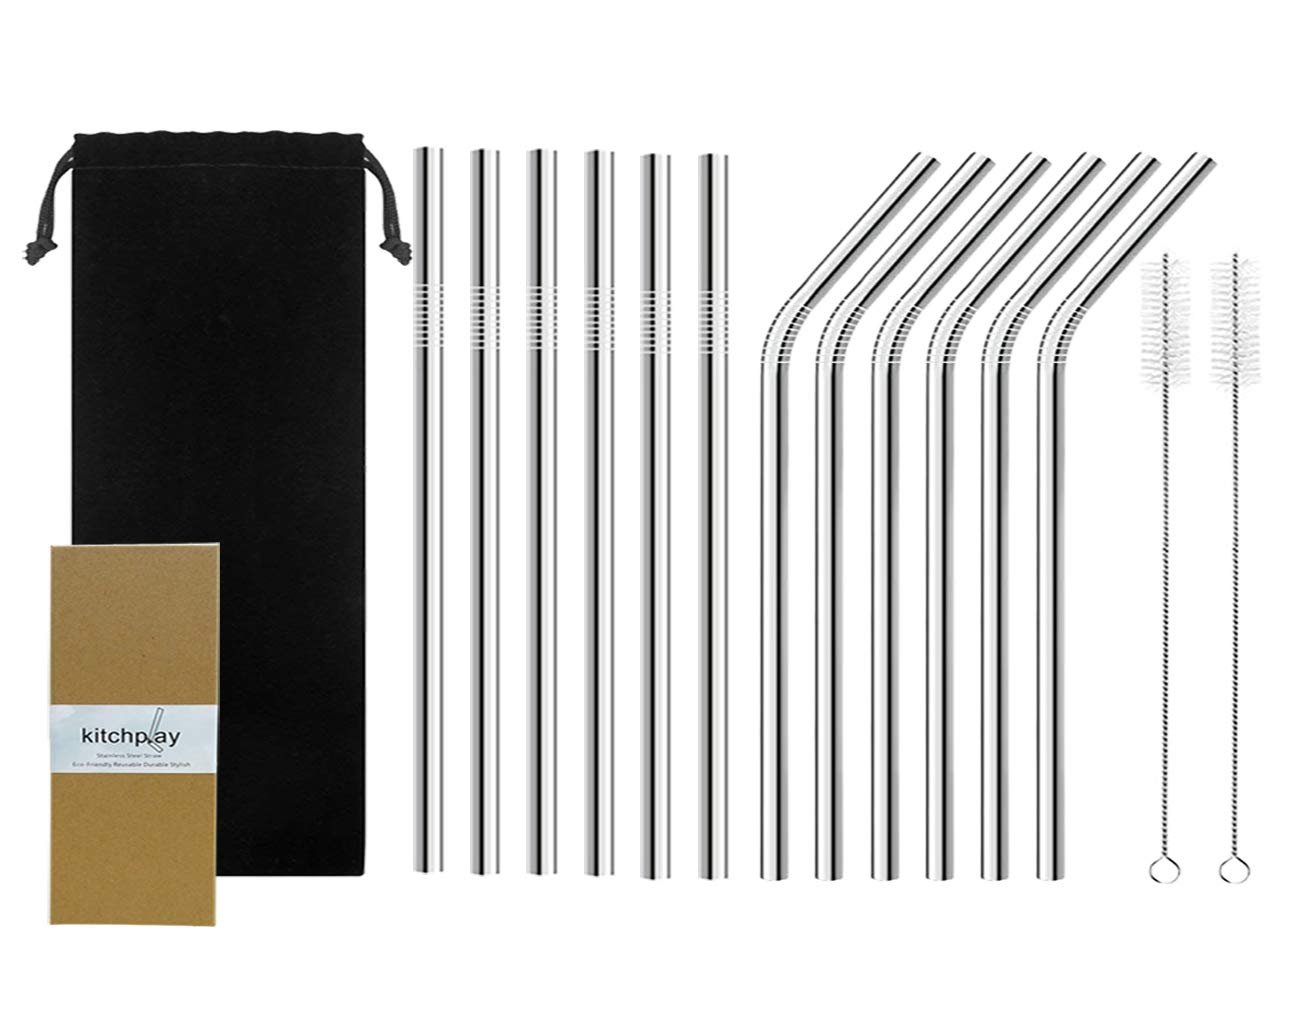 Reusable Metal Straws -Length of 10.5'' Long Stainless Steel Drinking Straws for 30oz Tumbler Yeti, Set of 12 Aluminum Straw Includes 6 Straight Straws 6 Bent Straws & 2 Cleaning Brush